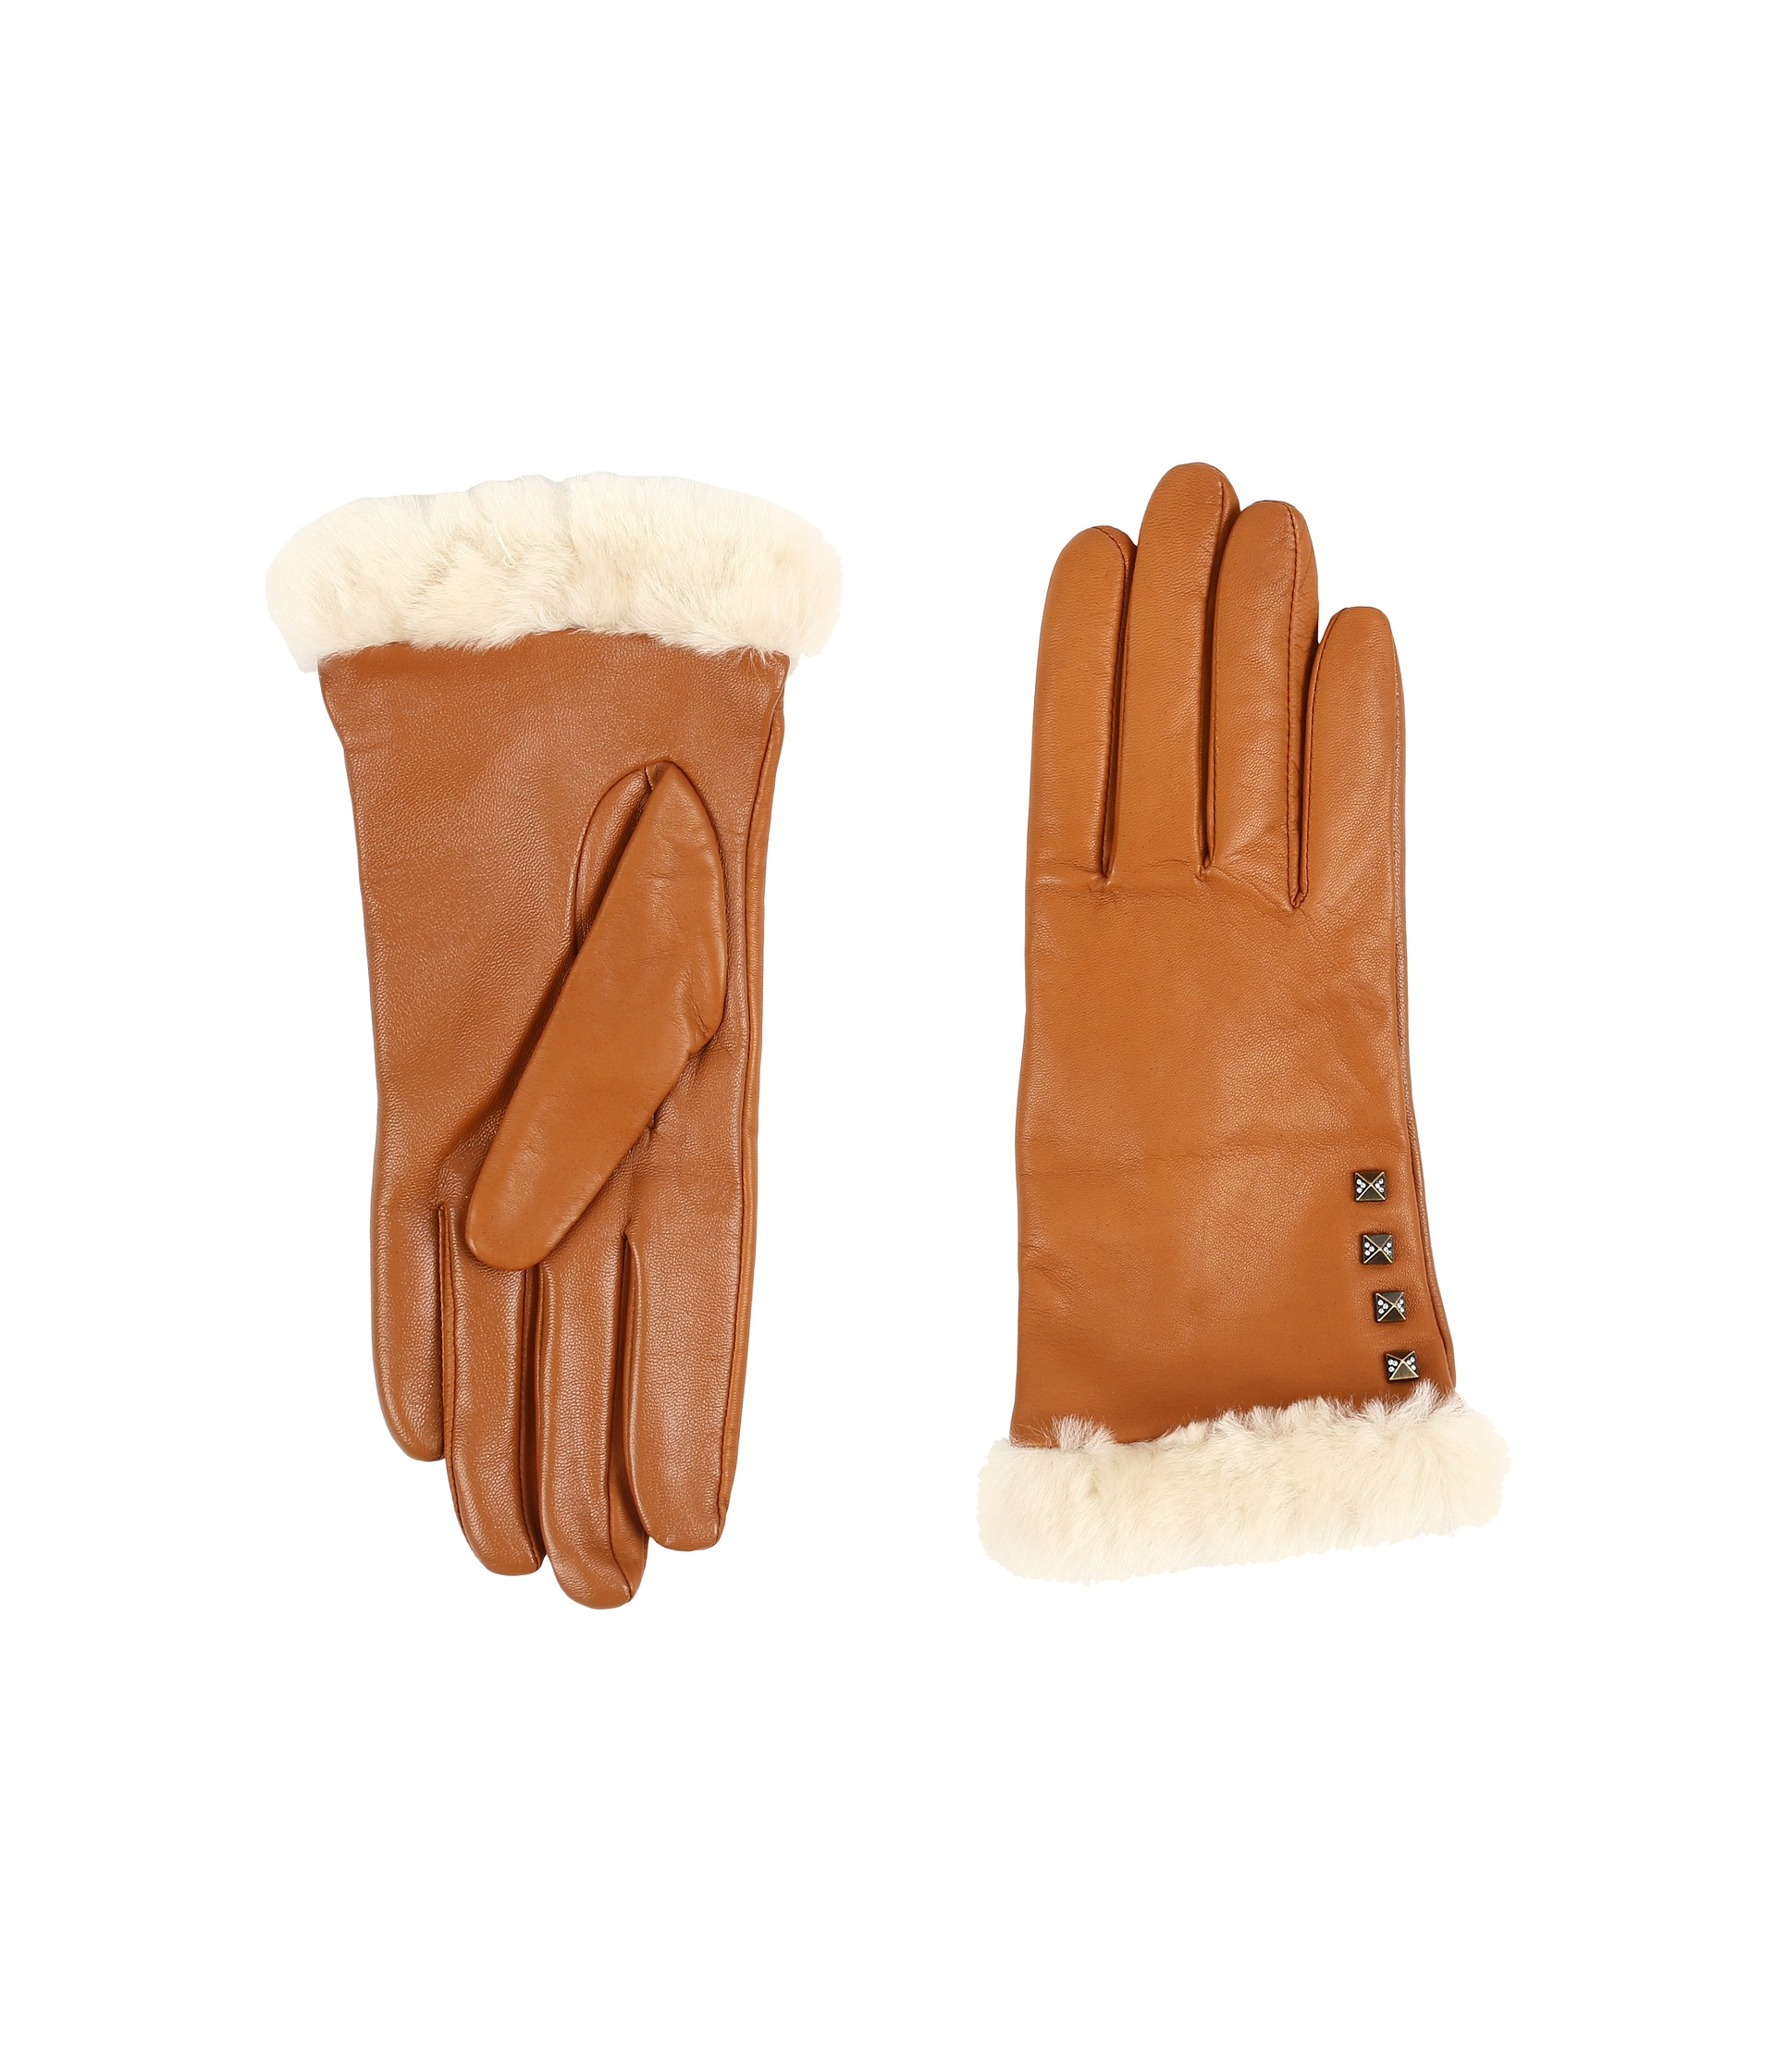 f9b96ab902a Ugg Leather Shearling Gloves - cheap watches mgc-gas.com